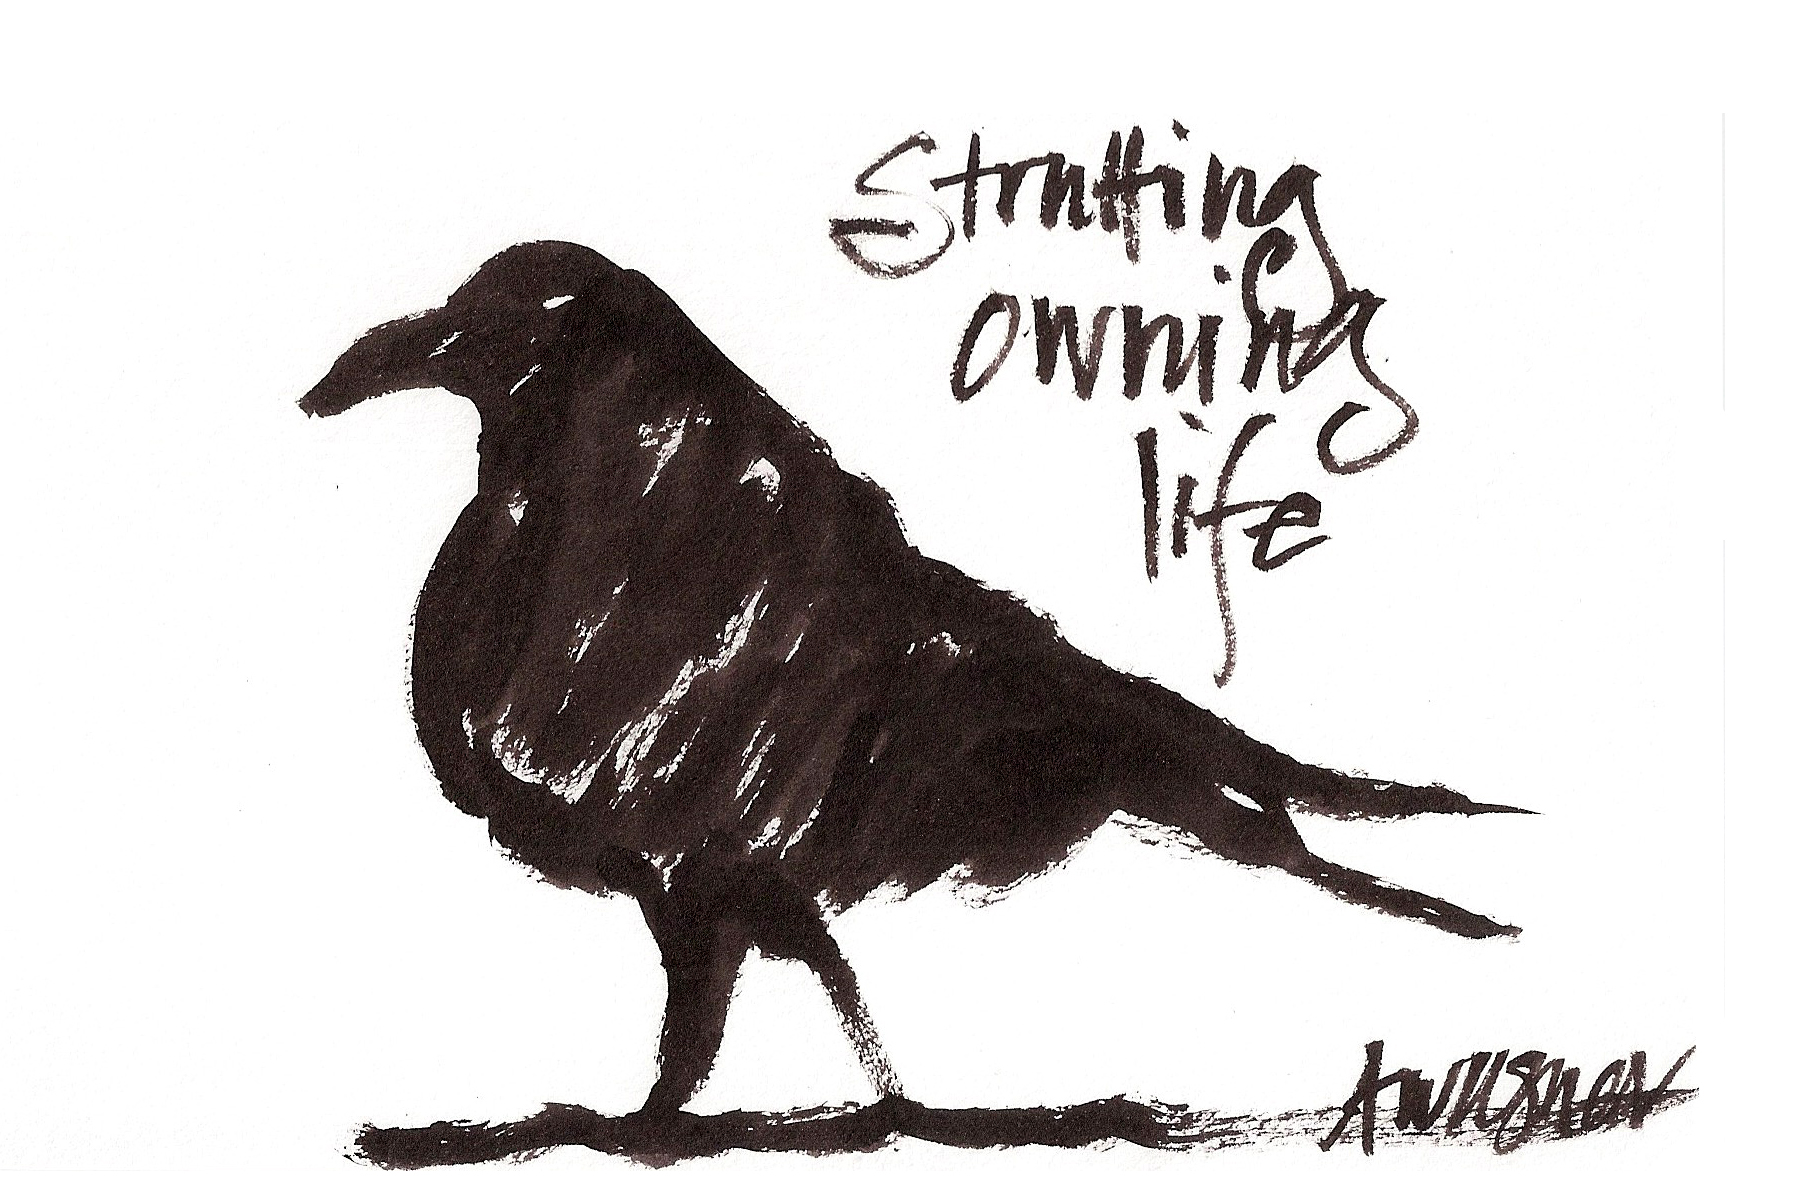 crow strutting owning life.jpg